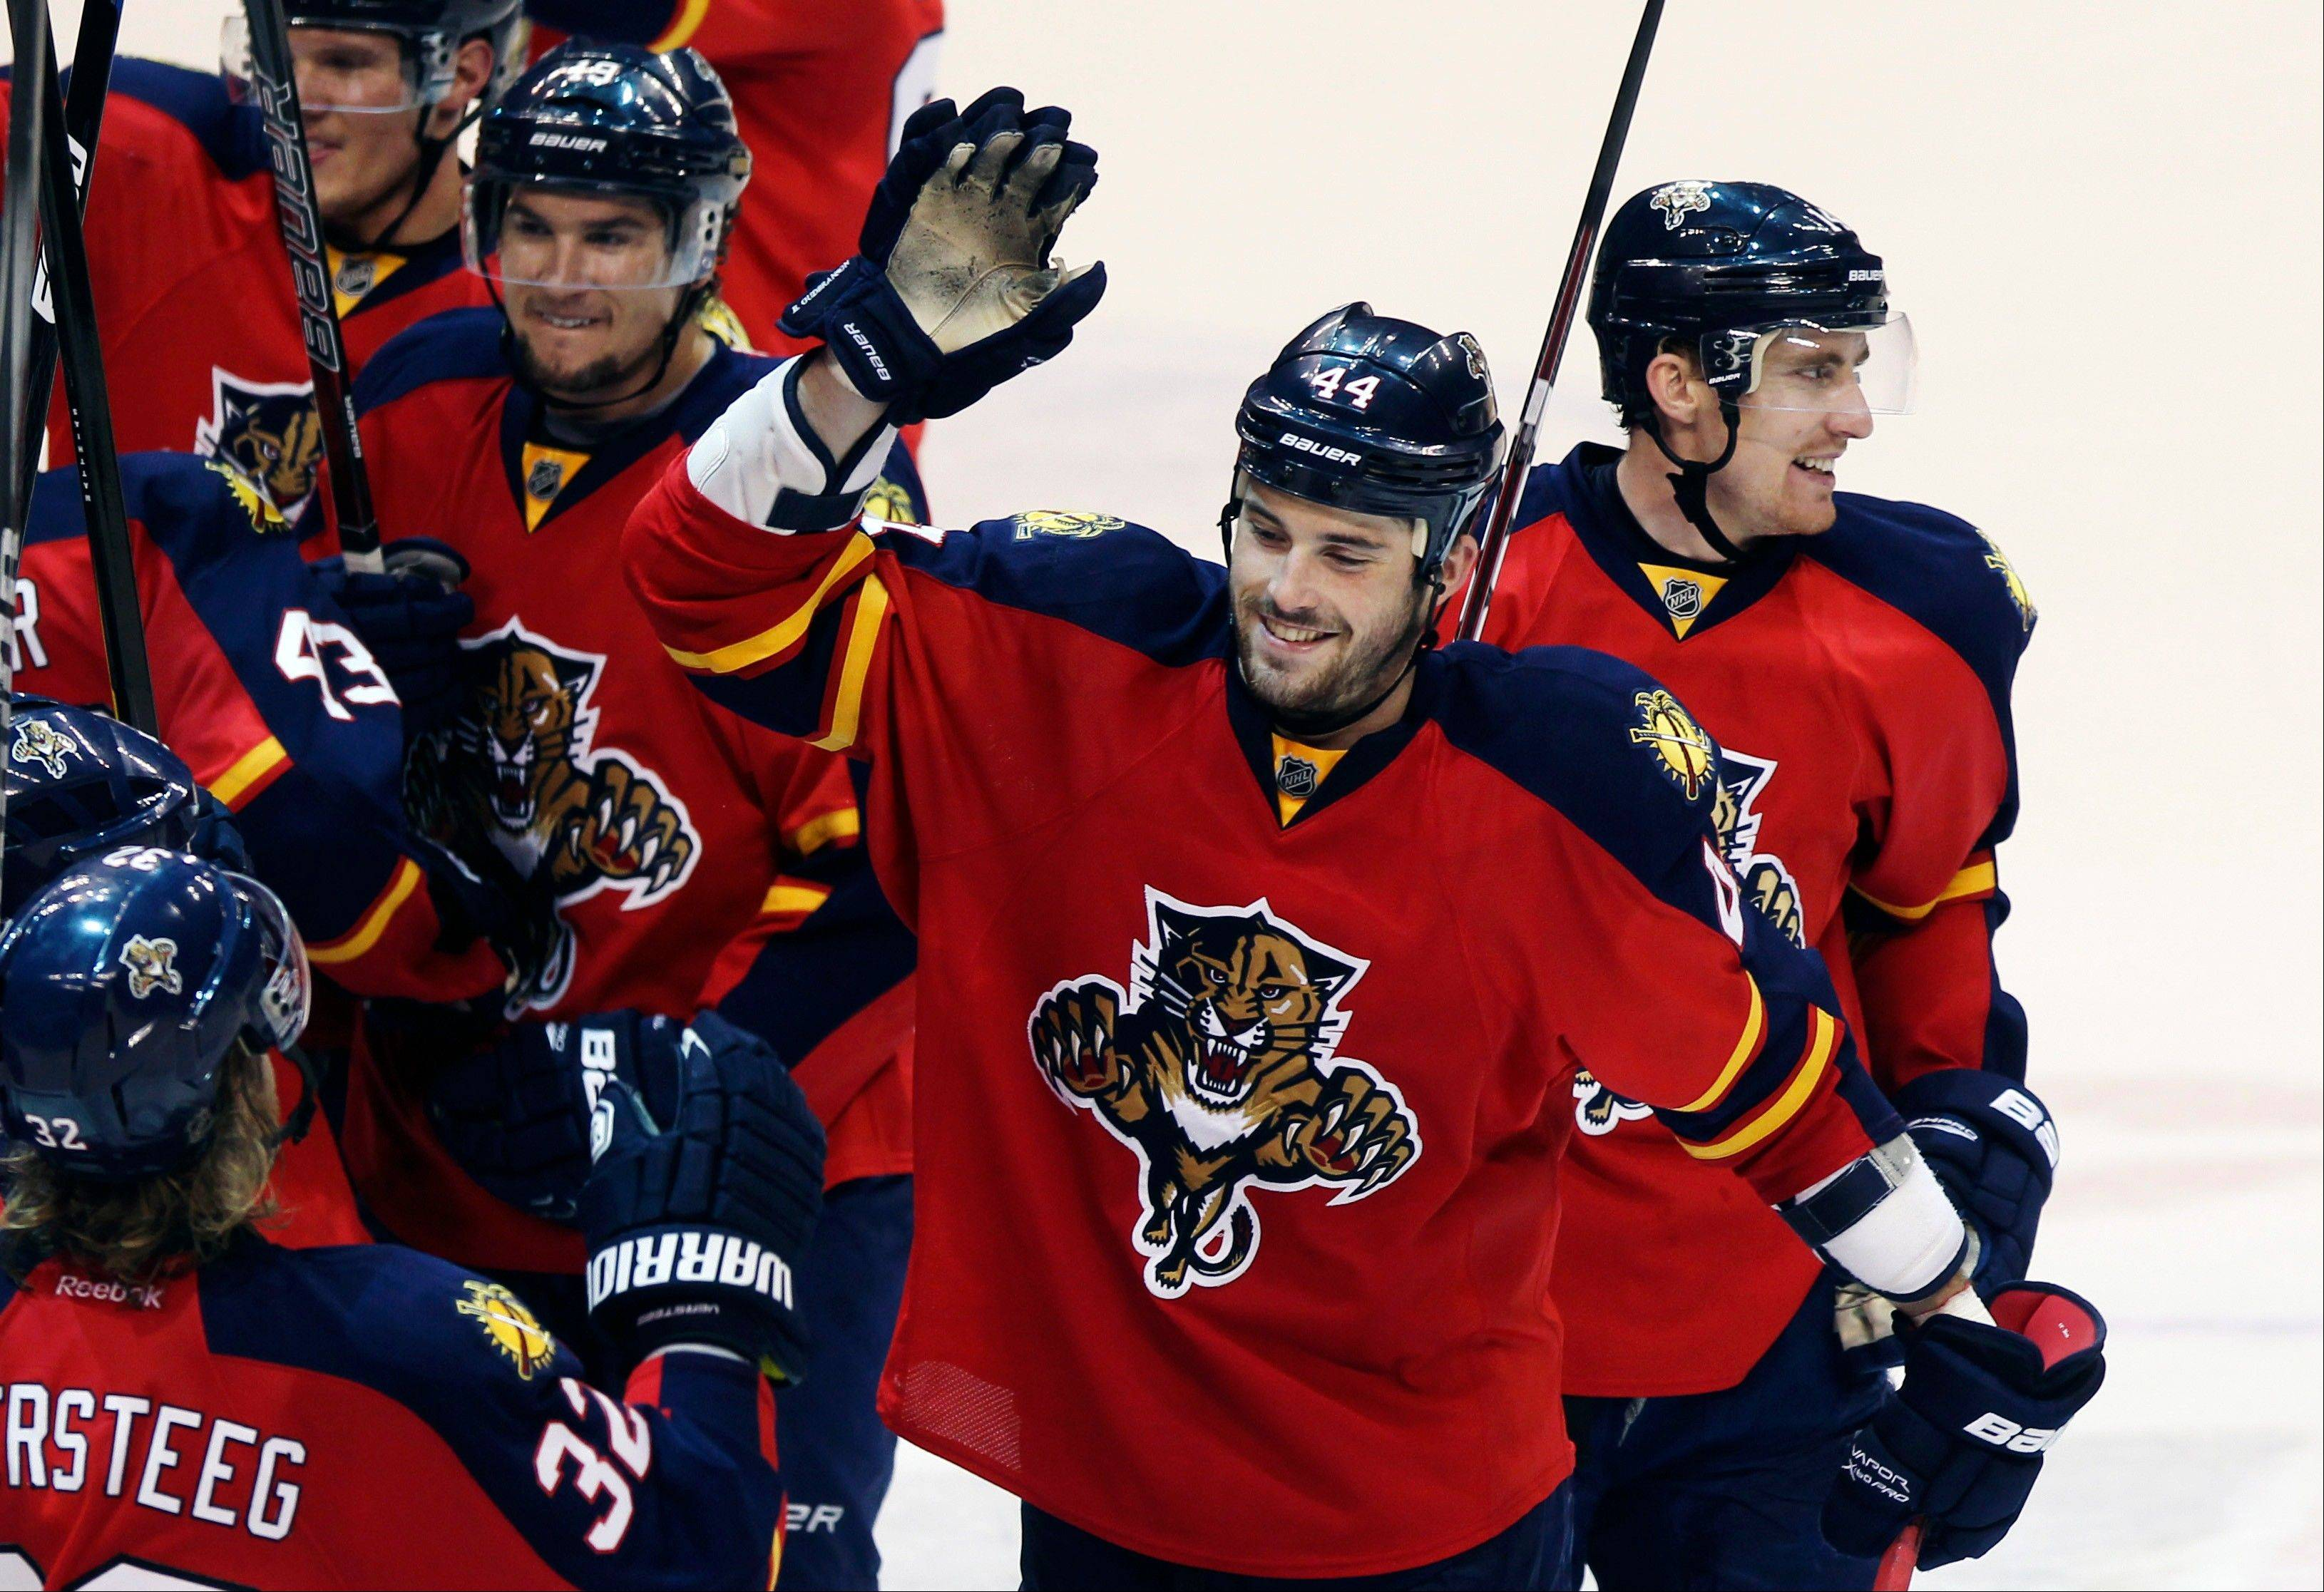 Panthers win division, draw Devils in Round 1